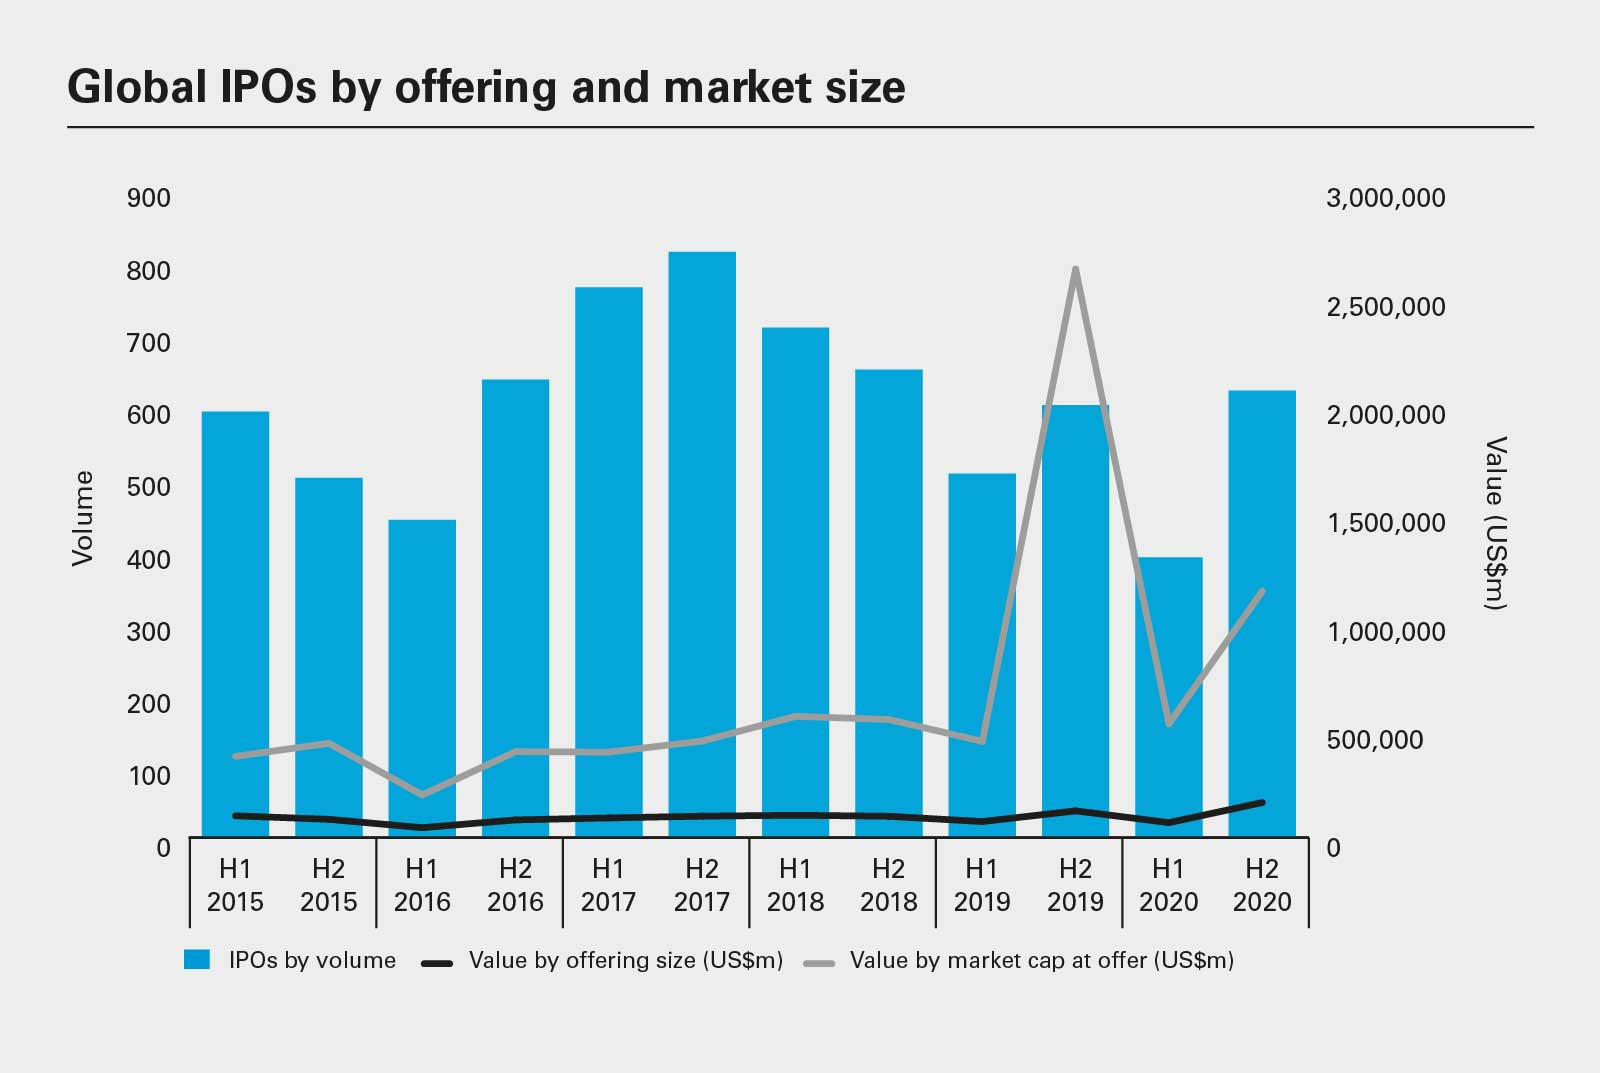 Global IPOs by offering and market size